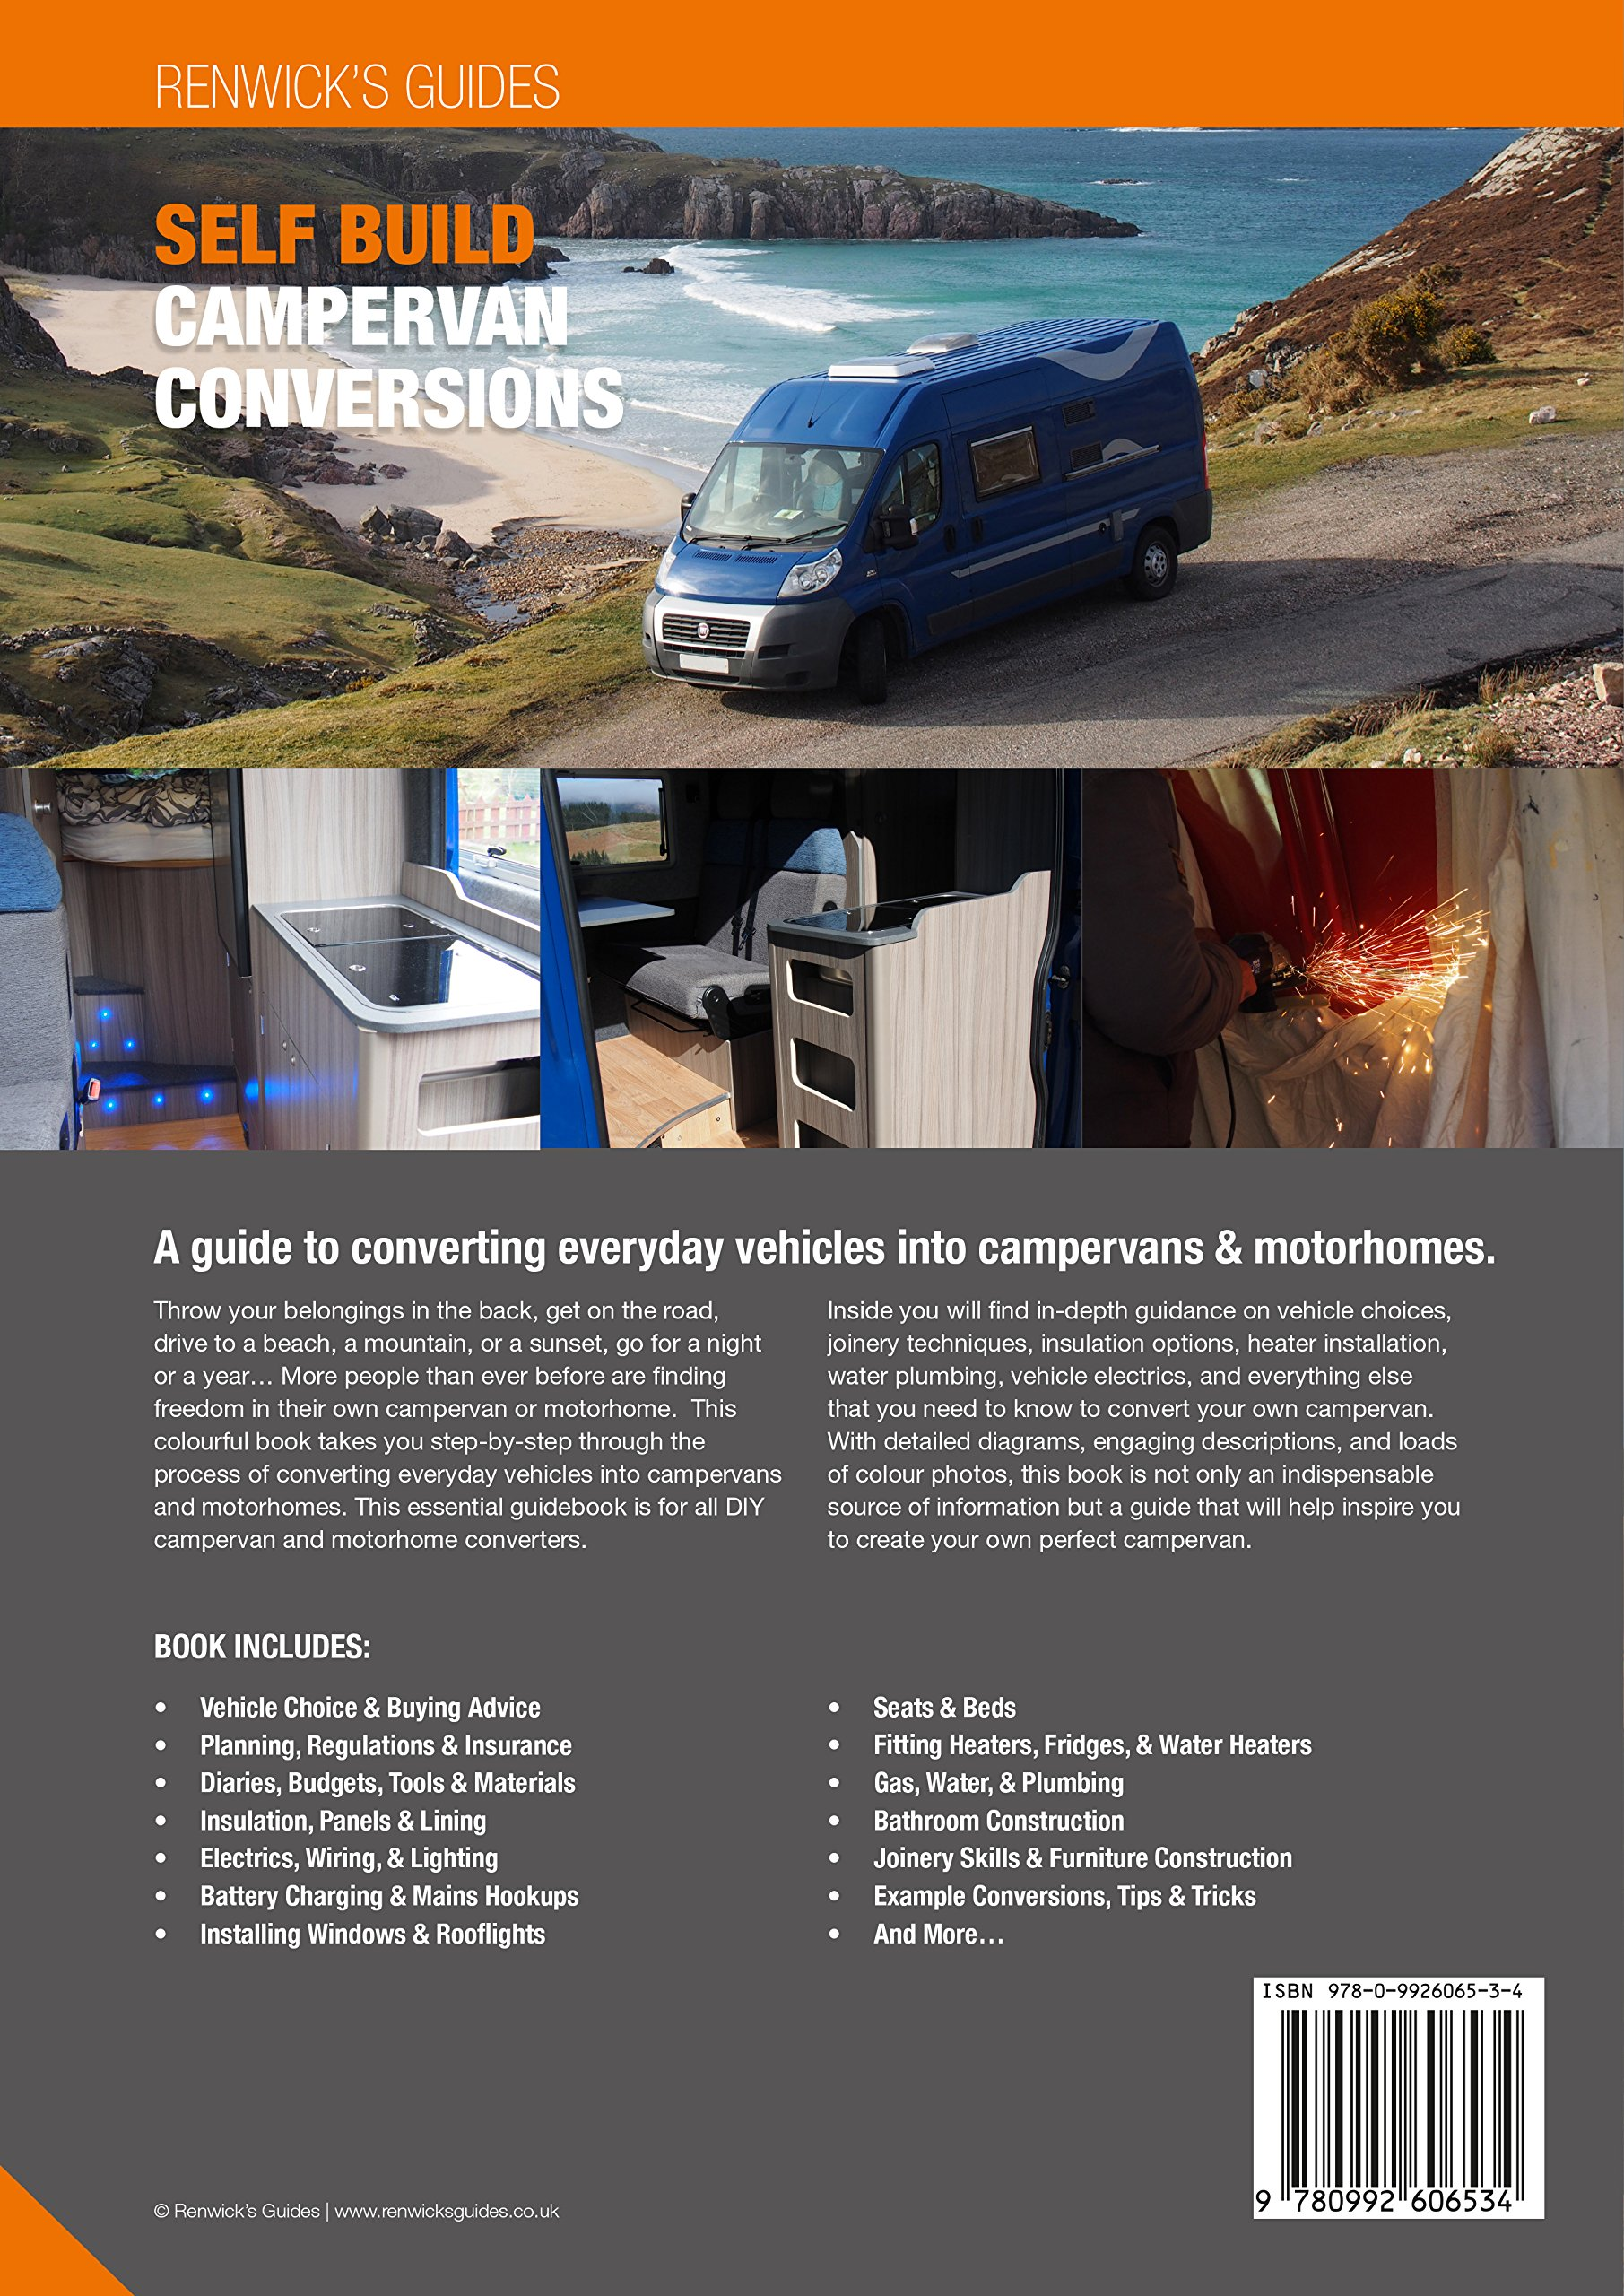 Self Build Campervan Conversions - A guide to converting everyday